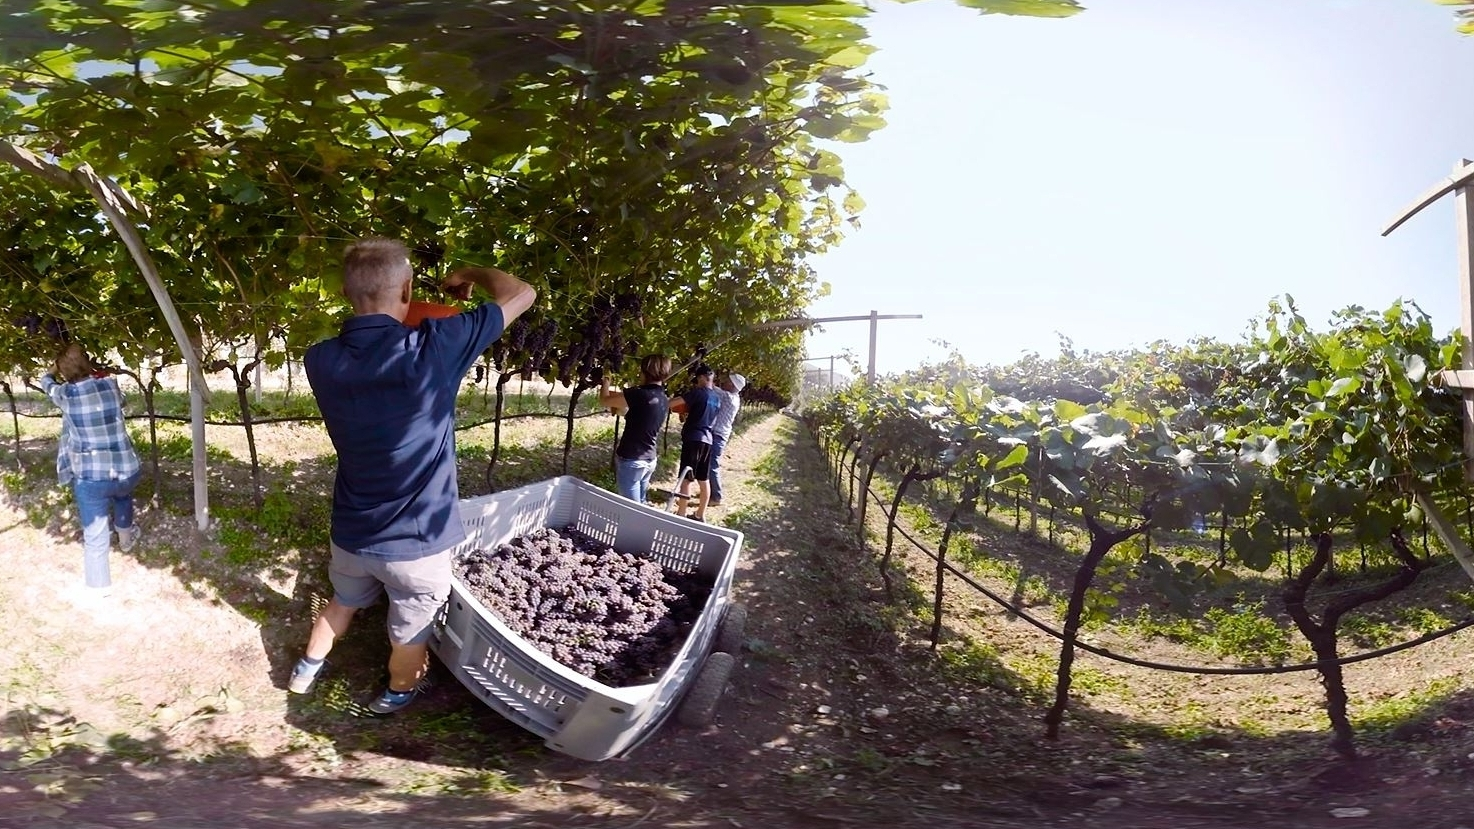 Cavit Wine 360 - Palm Bay International wanted to showcase the people and process behind America's number one wine import. The 360° video experience brought viewers to the lush beauty of Northern Italy's Trentino region, where a variety of Cavit grapes are grown. The experience was shown on Gear VR headsets at a top food and beverage expo.